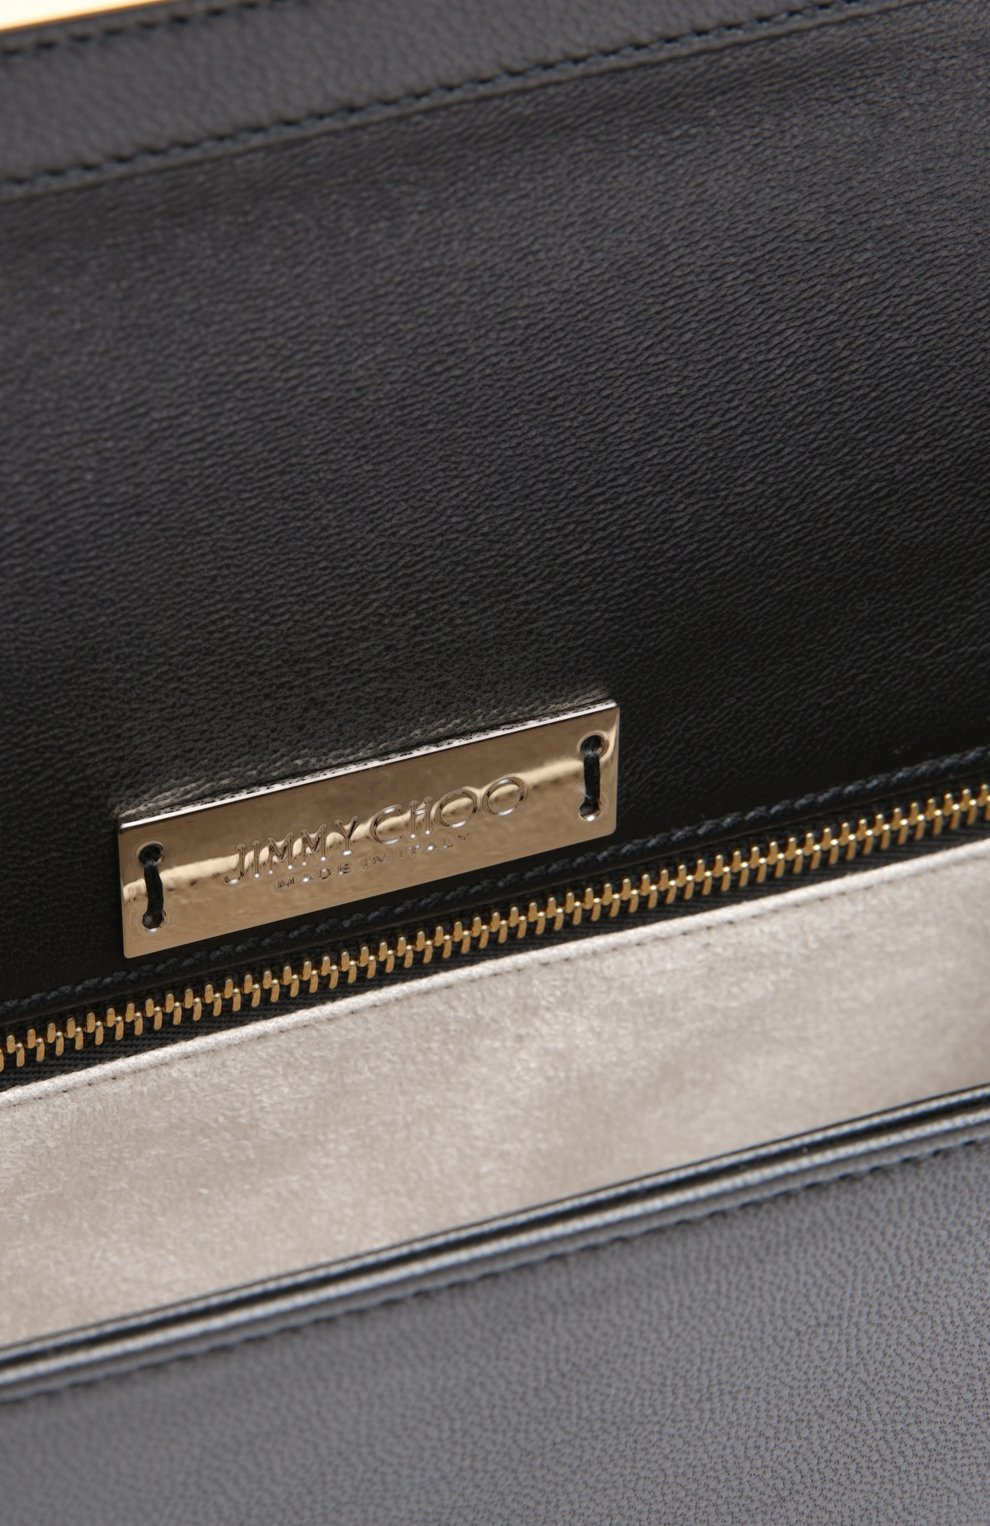 Сумка Jimmy Choo чёрная | Фото №3